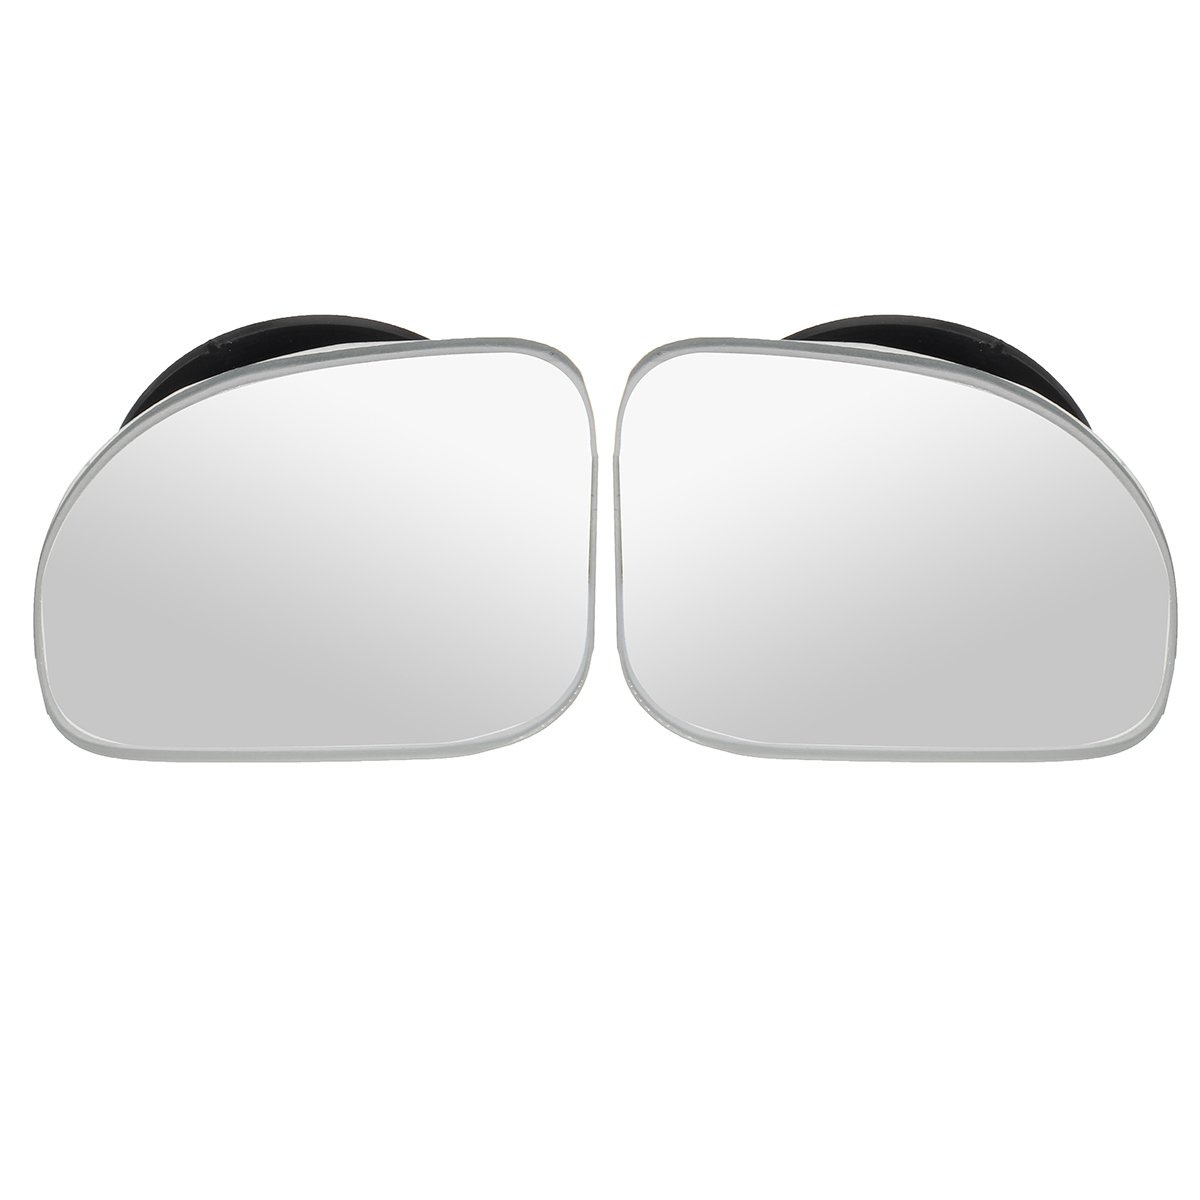 HITSAN INCORPORATION 2PCS Adjustable Car Convex Blind Spot Side Rear View Mirror Wide Angle